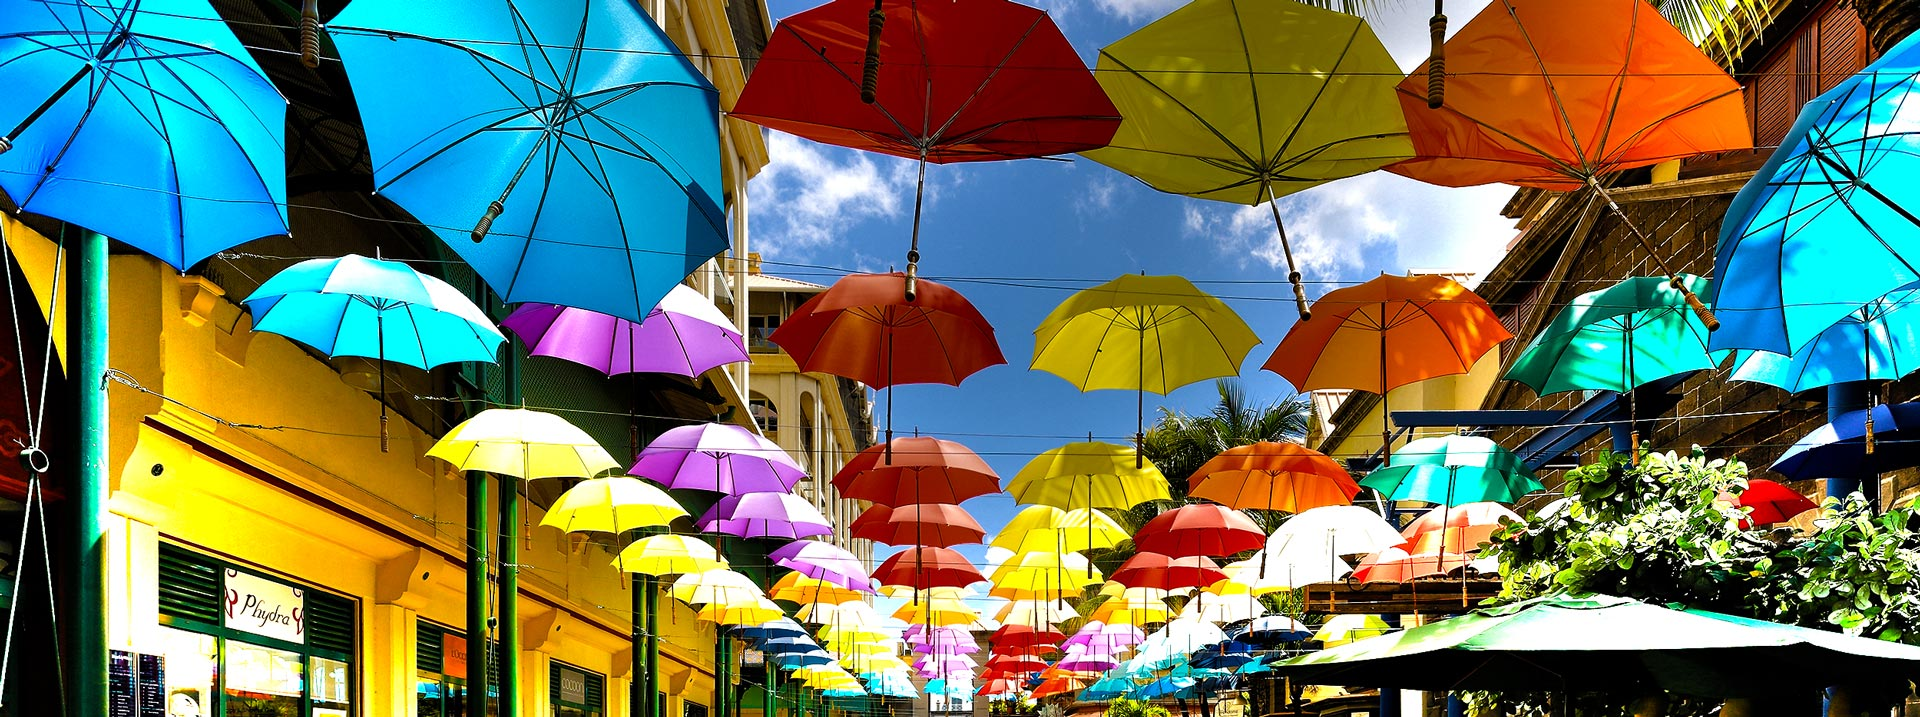 keeping-cool-in-the-shade-umbrellas